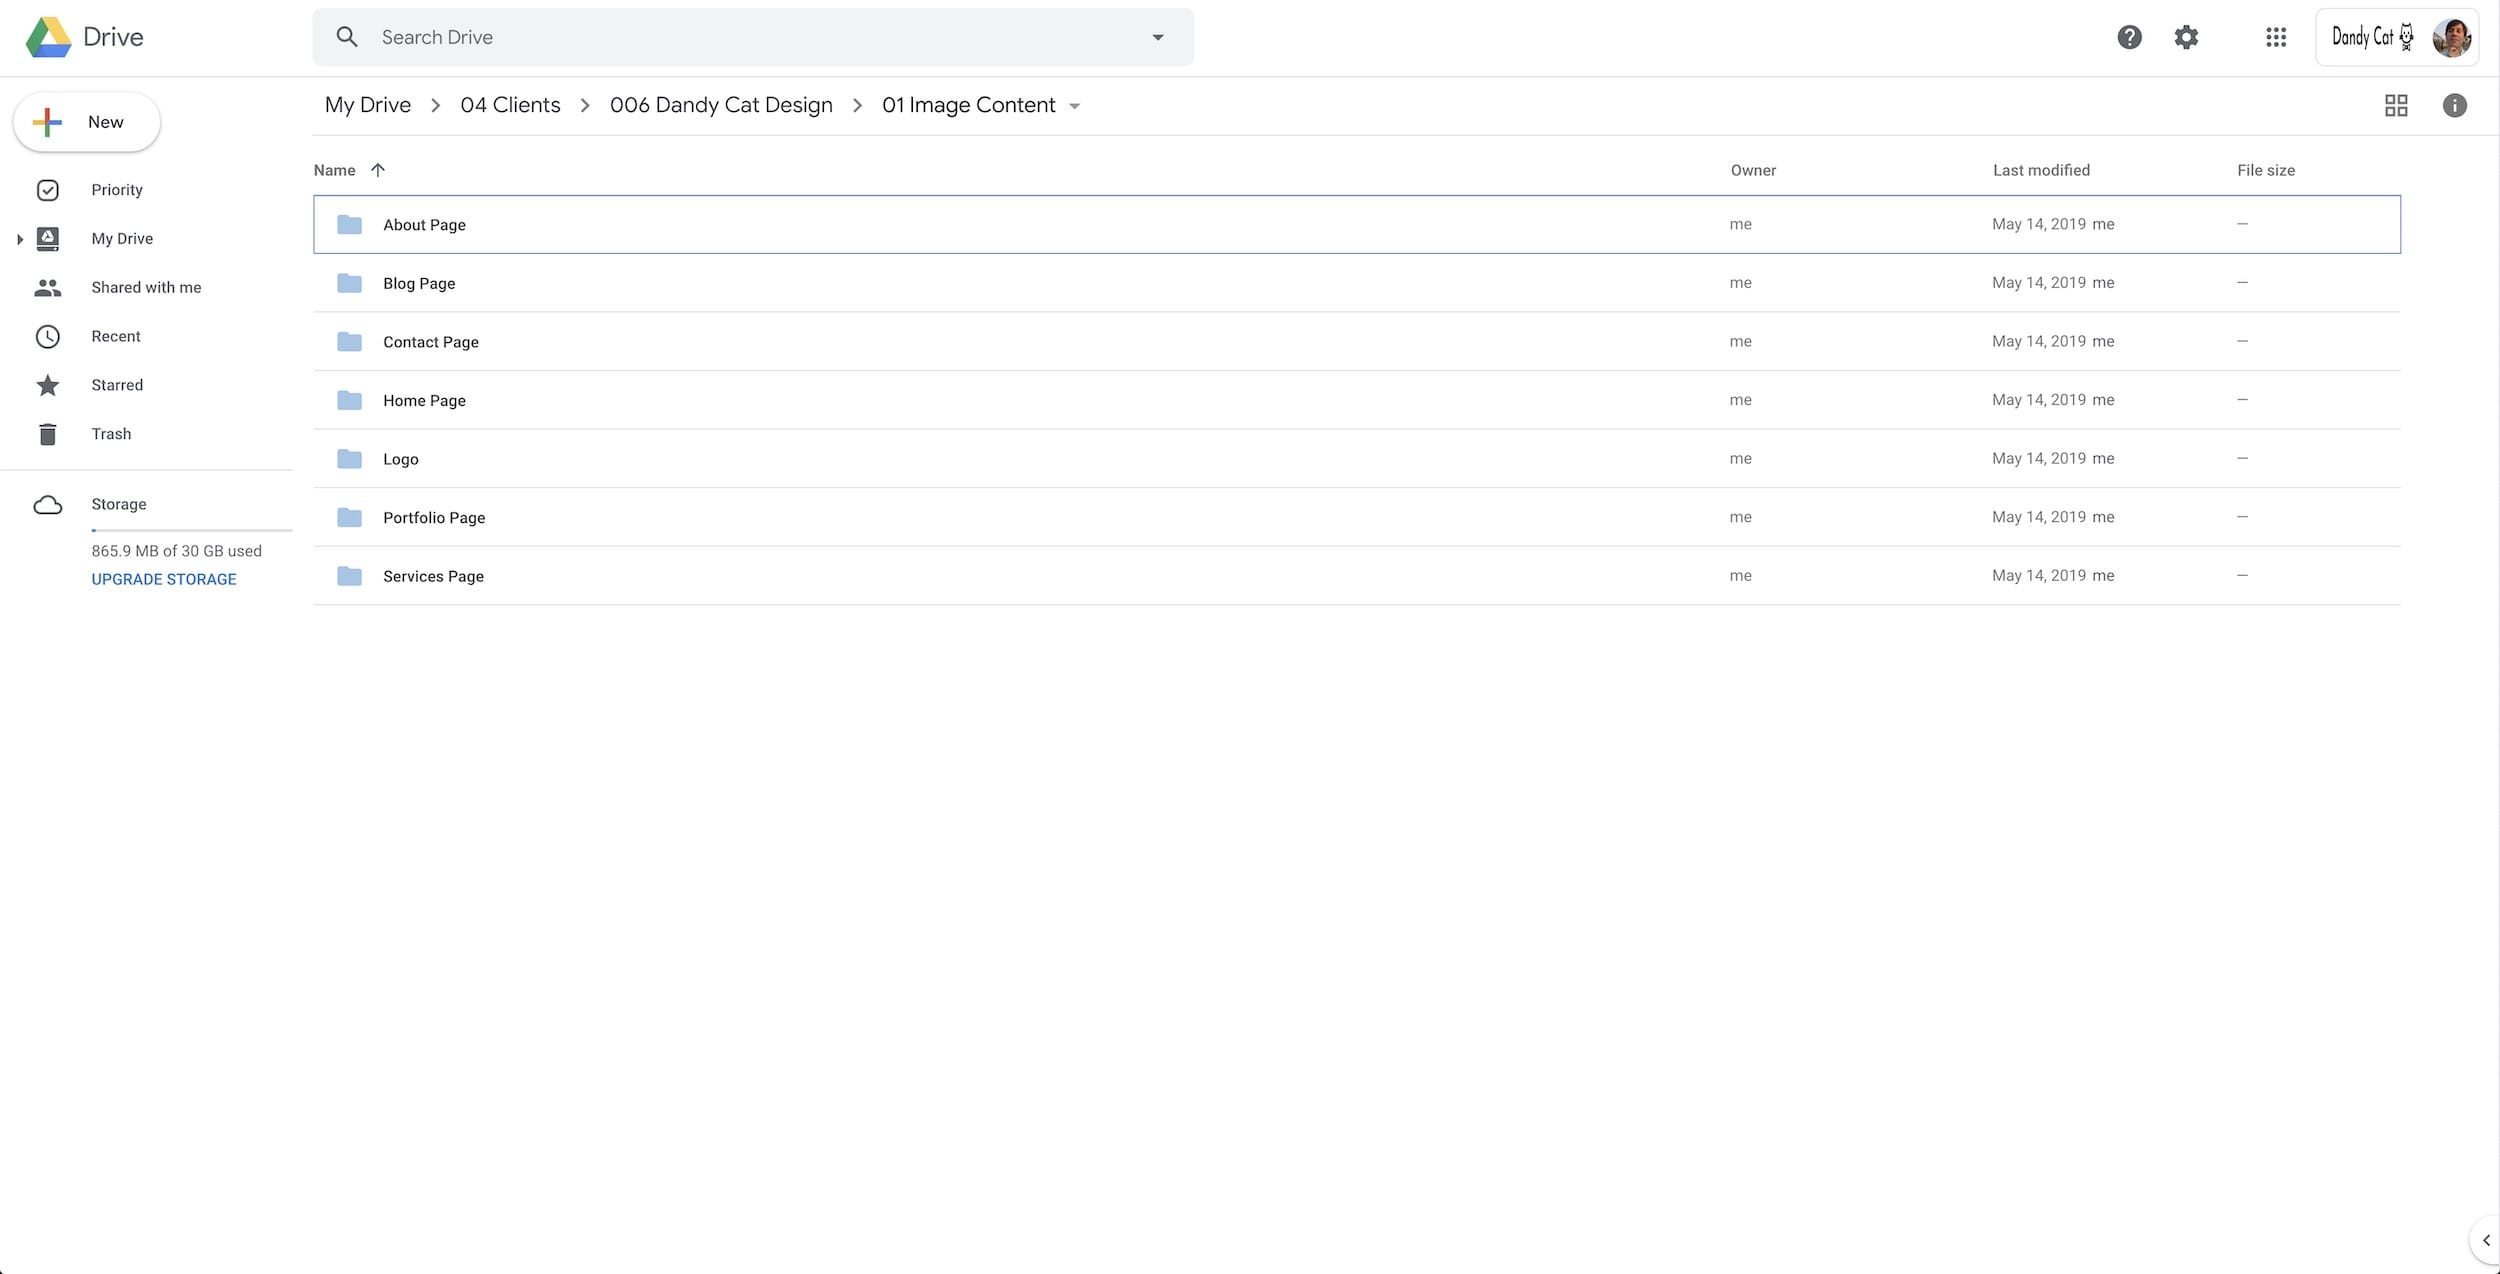 An image of a shared Google Drive folder featuring several folders that will all hold images for the pages of a website.